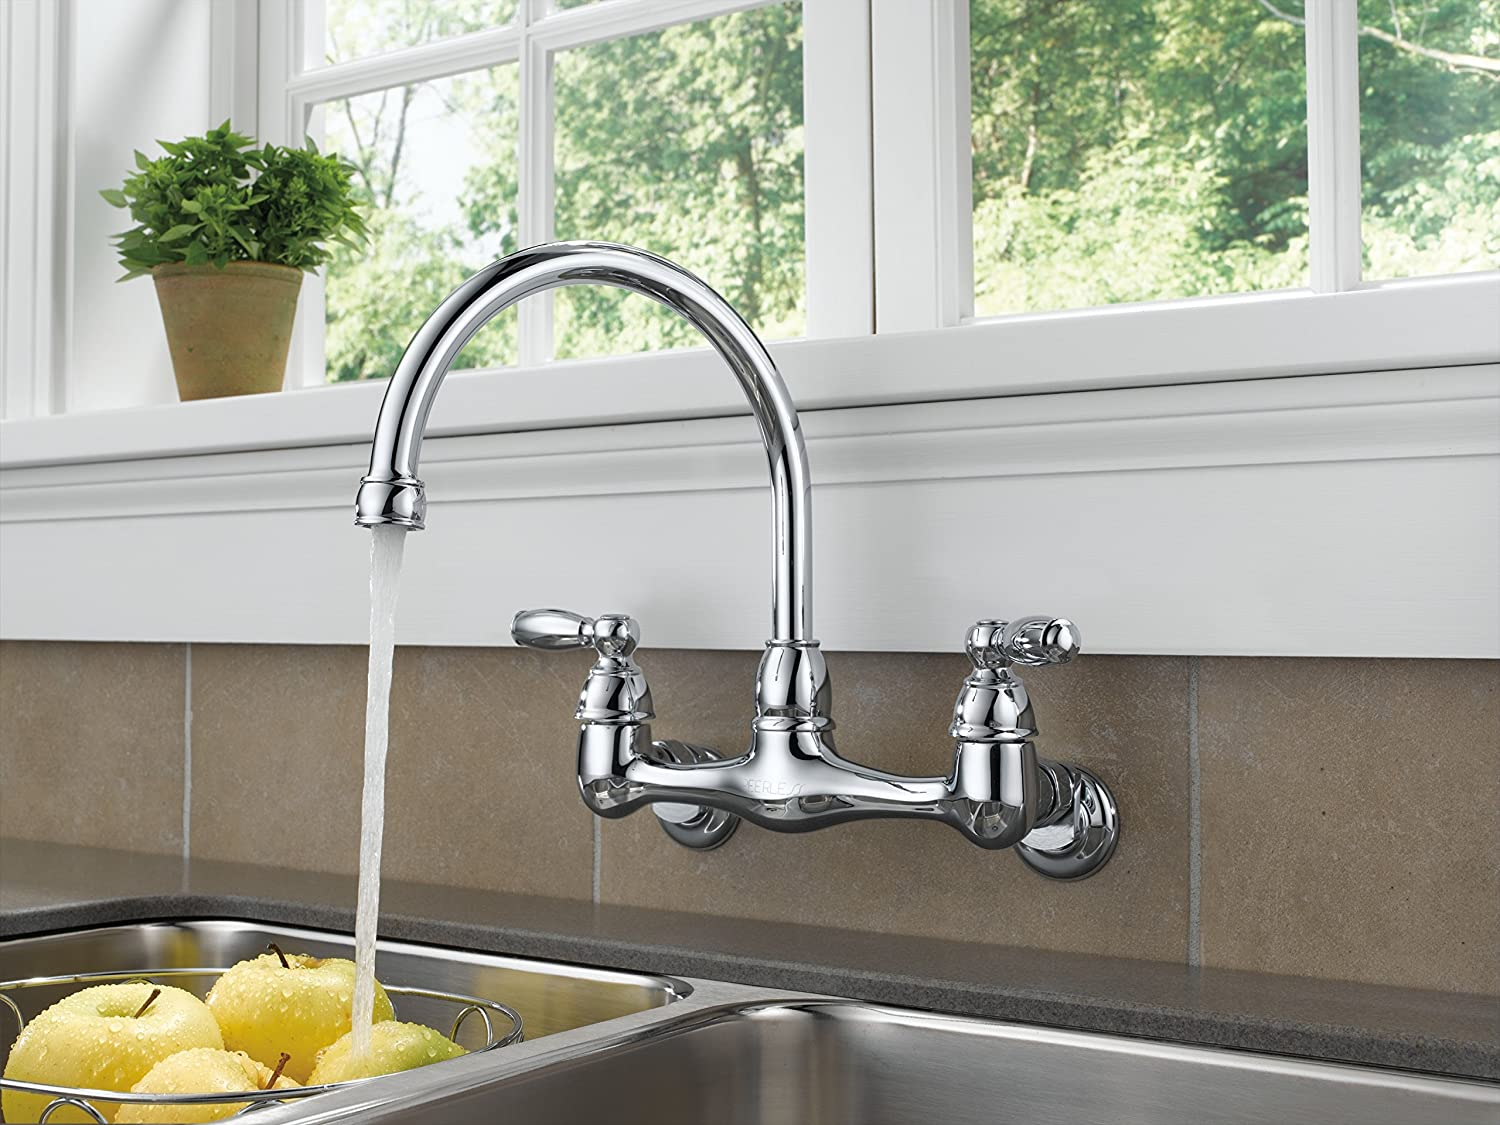 Peerless P299305lf Two Handle Wall Mounted Kitchen Faucet Chrome